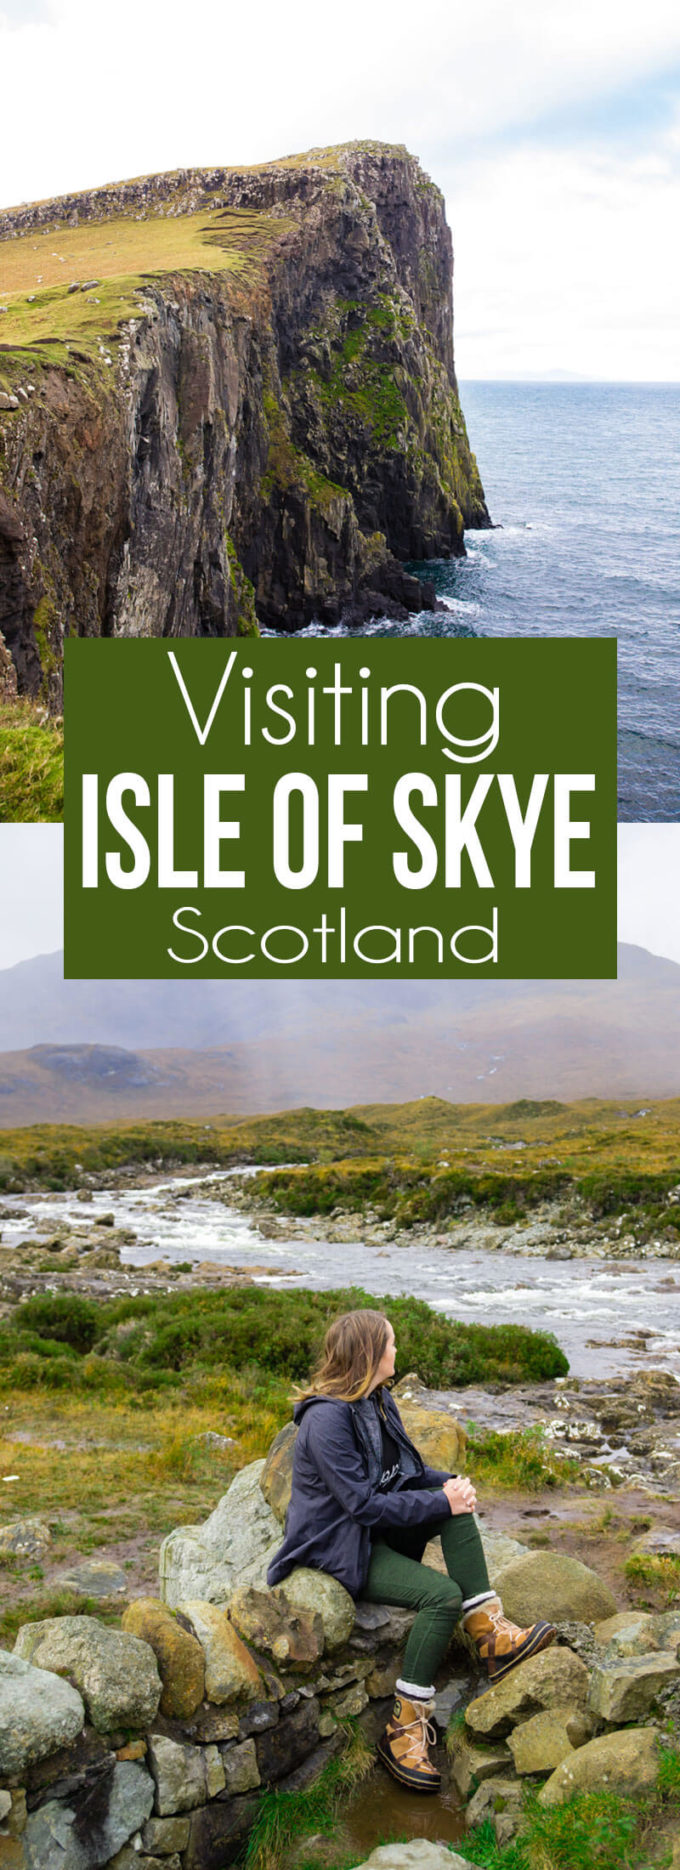 Visiting the Isle of Skye in Scotland is a magical experience, this post shares tips for what to see, who to book with, and when to go